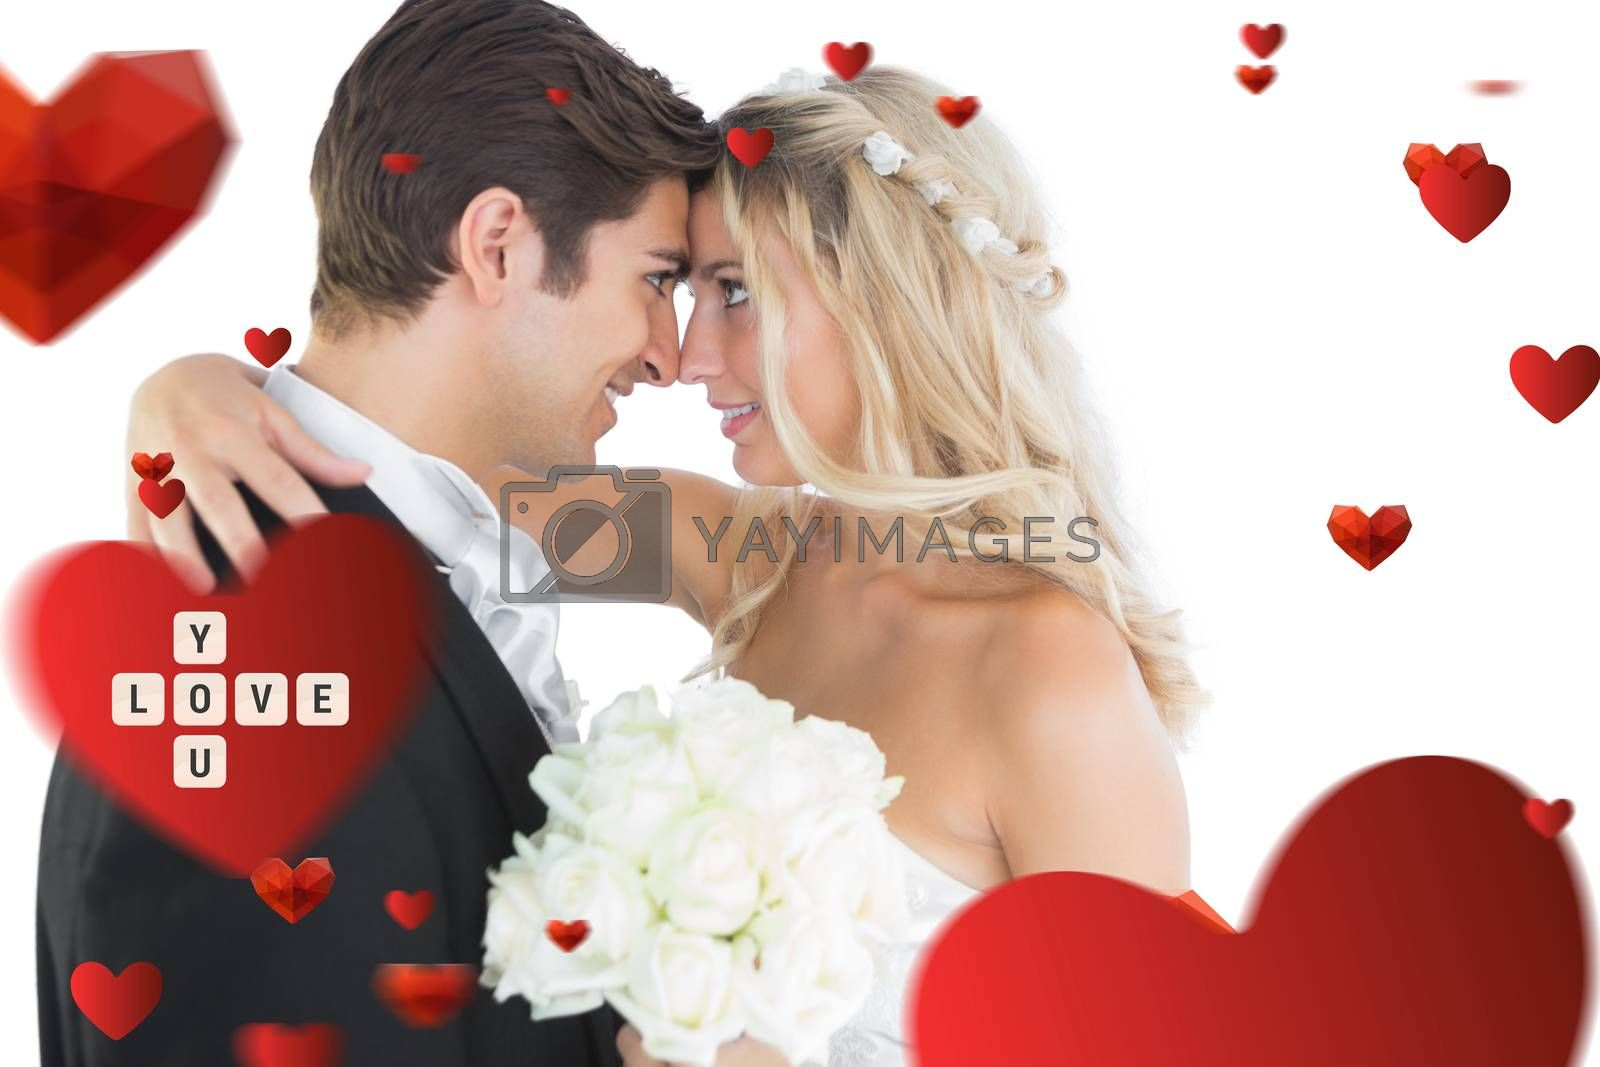 Beautiful young married couple looking each other in the face against love you tiles